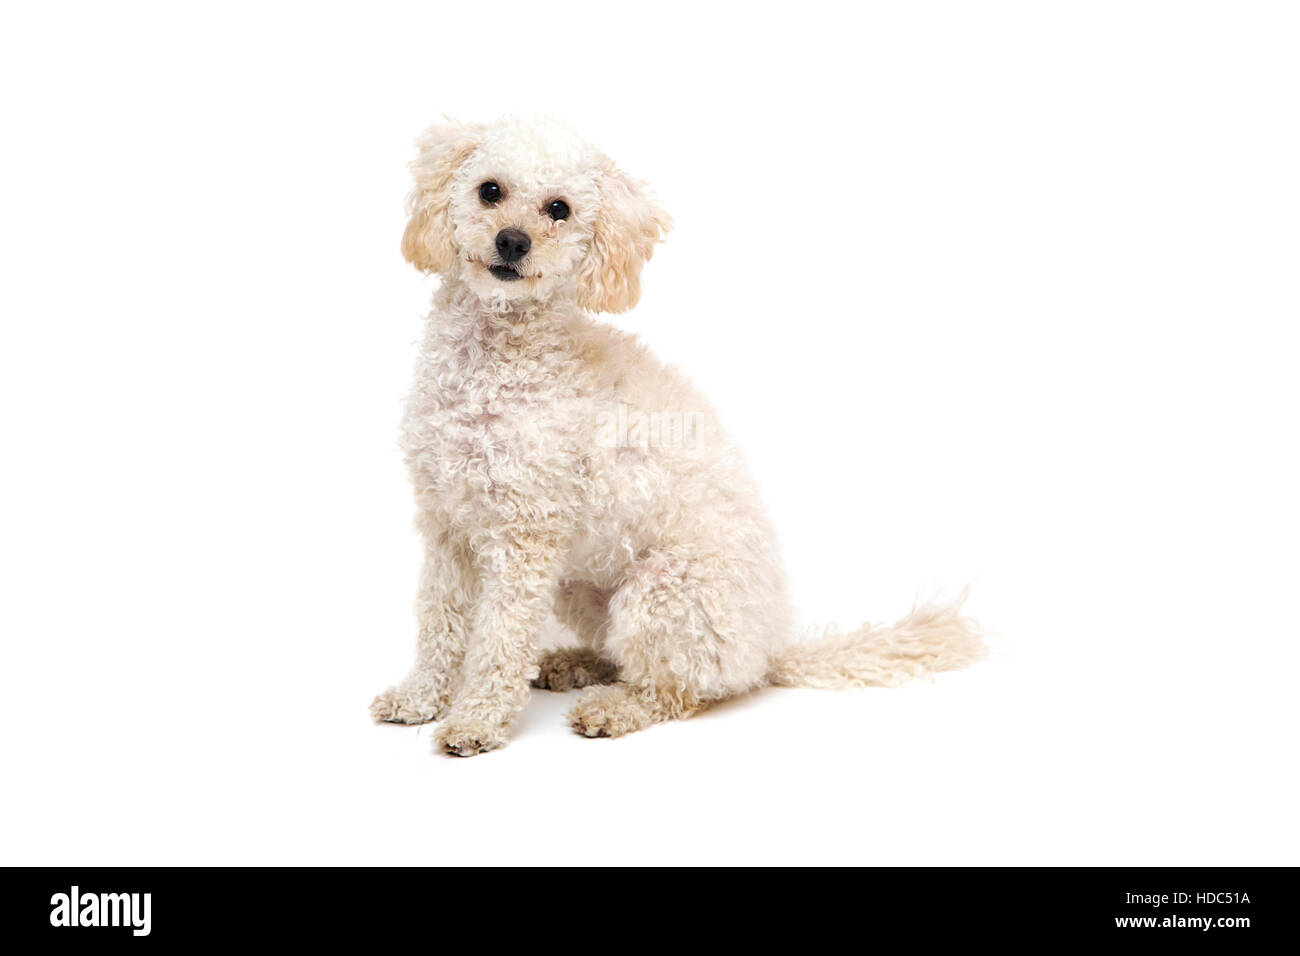 Cute little white poodle isolated on white - Stock Image